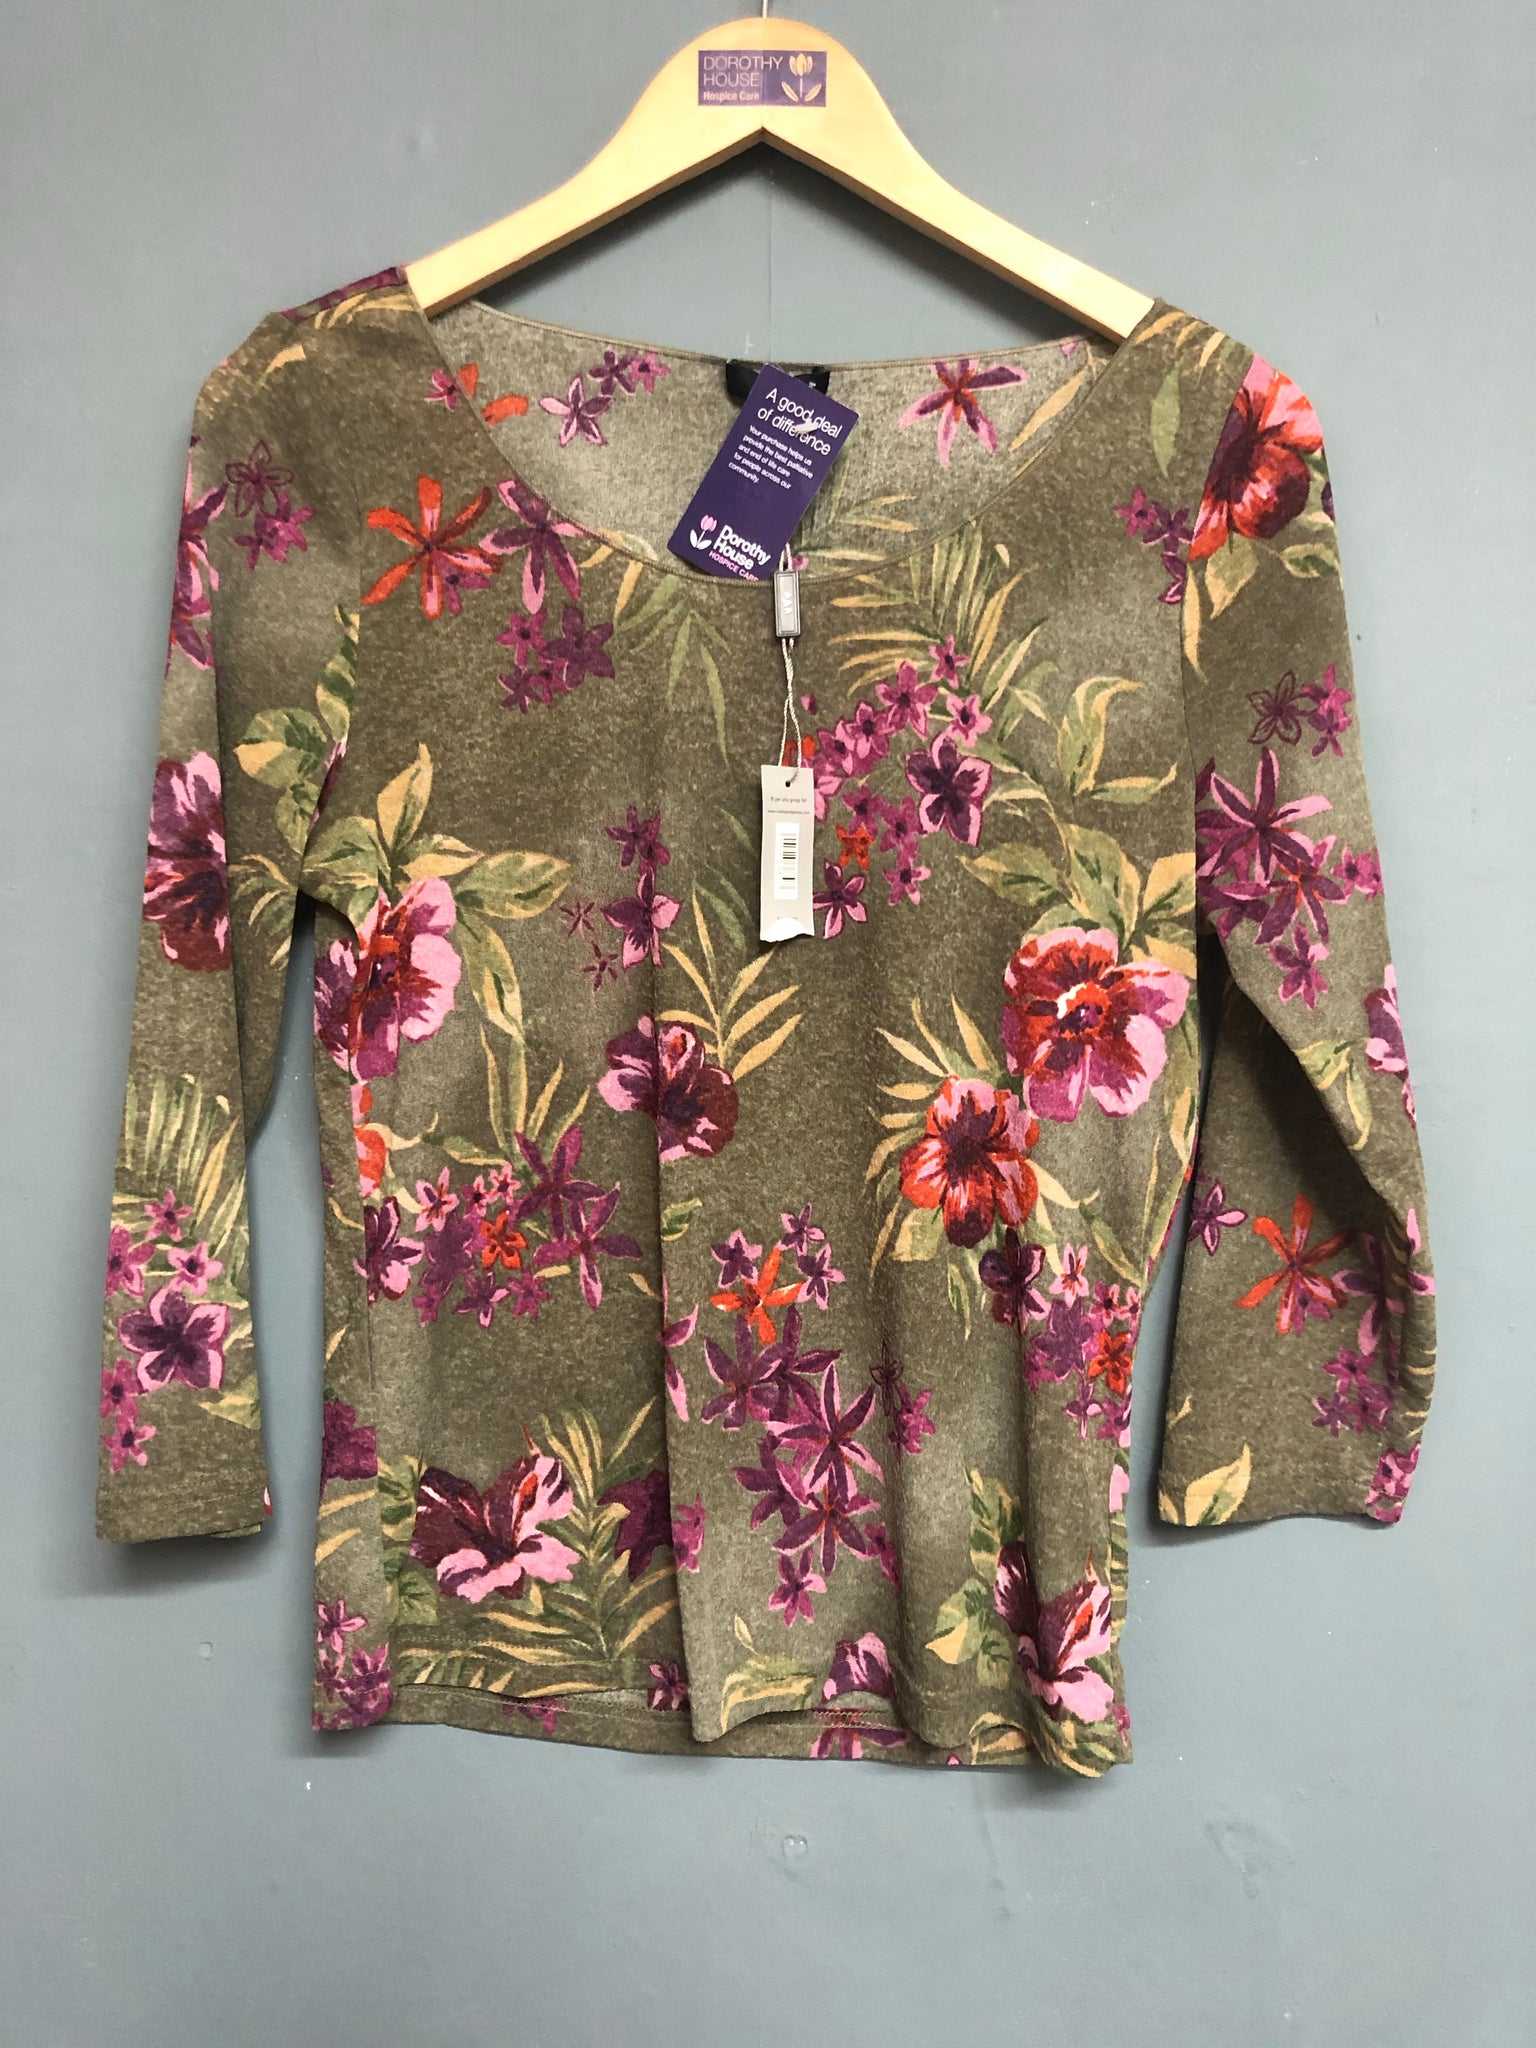 Green Floral Design Long Sleeve Top Size 16